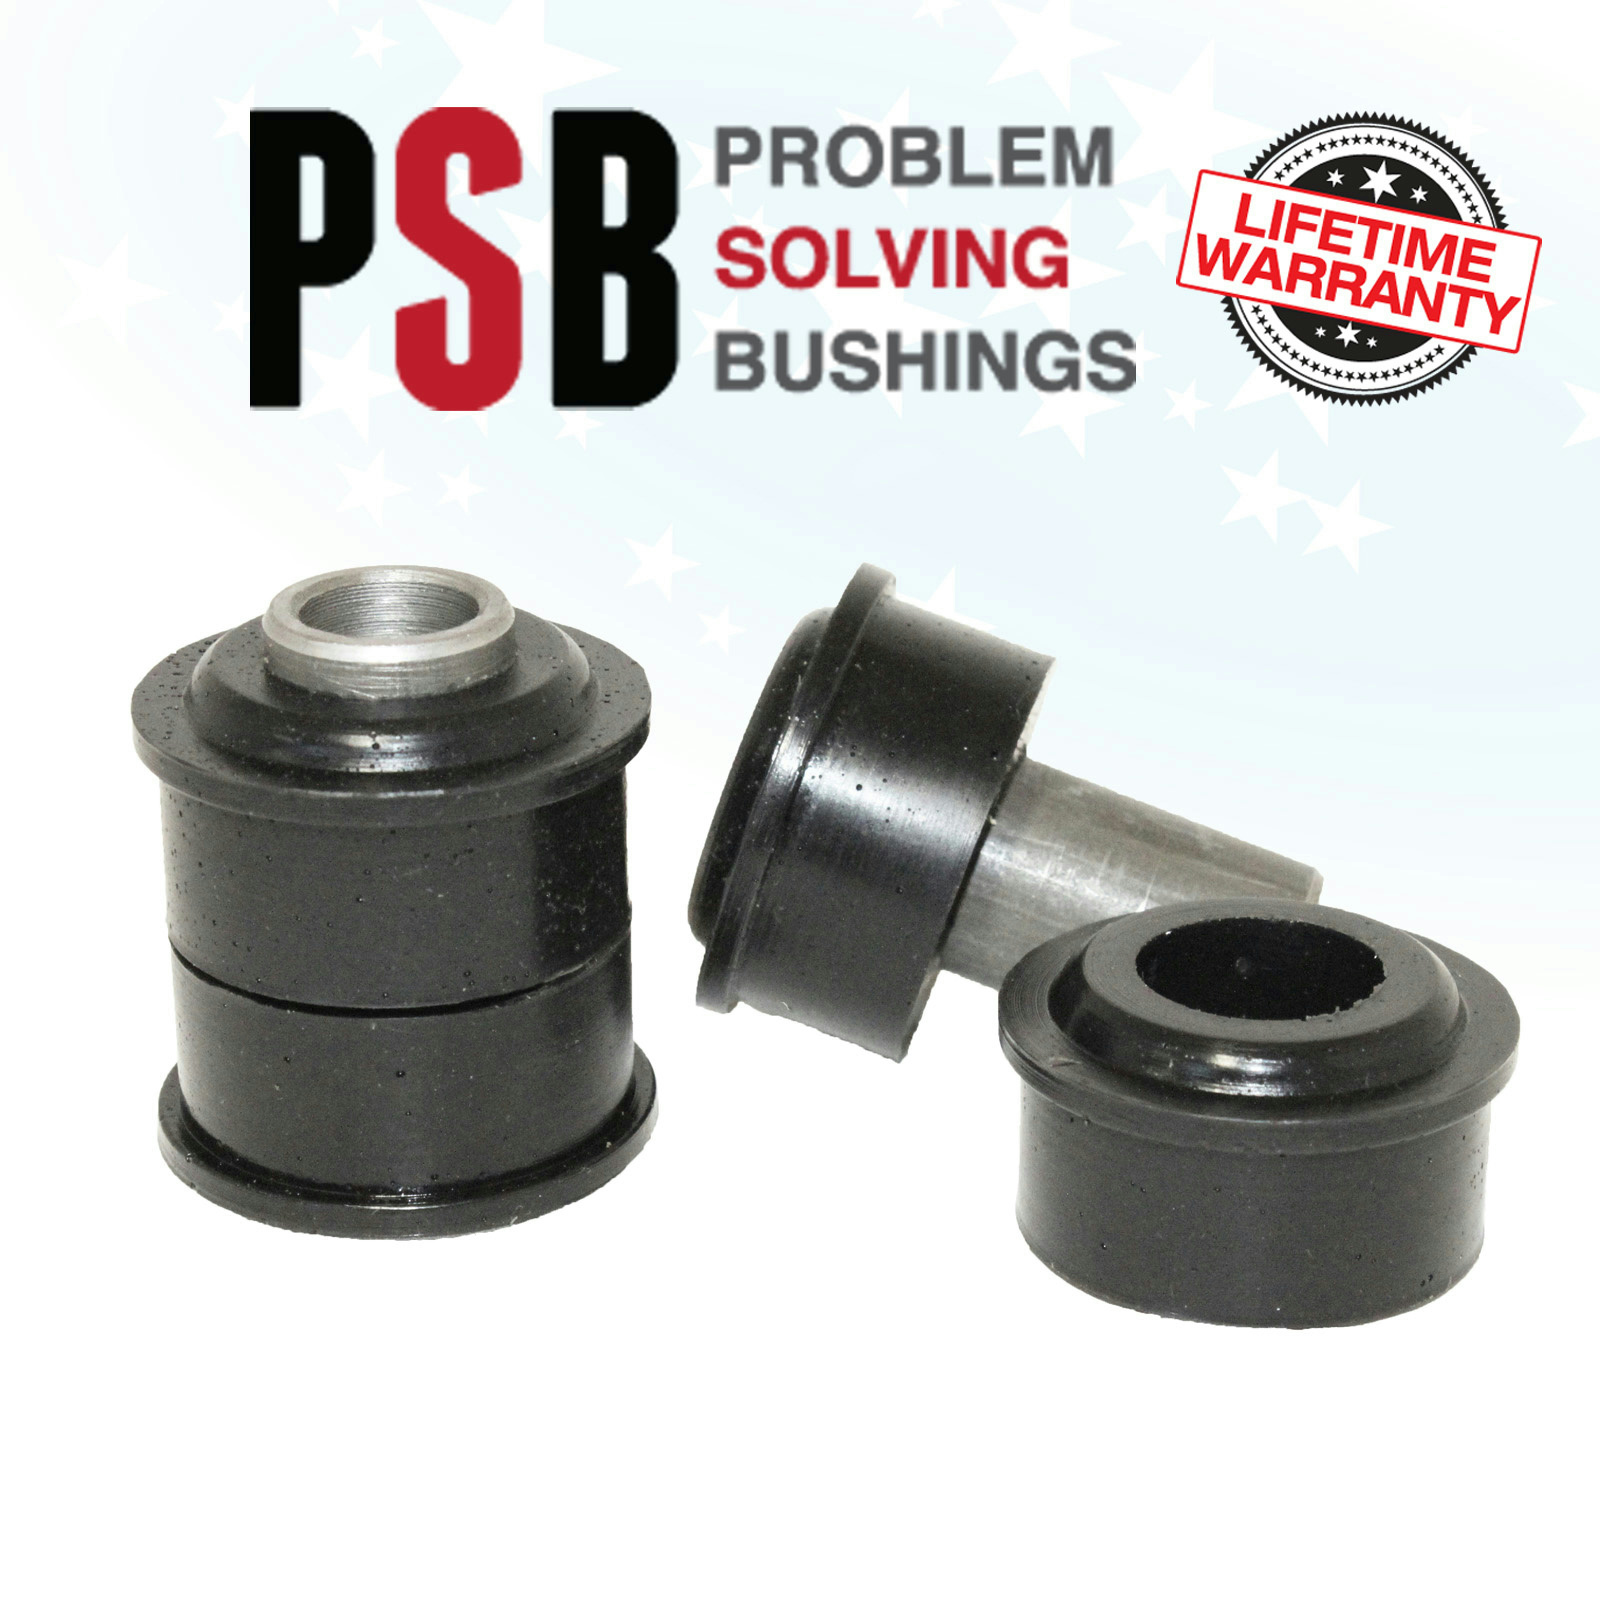 Details about Rear Lower Control Arm Bushing Kit Fits: 08-17 Nissan Rogue,  X-Trail - PSB 567